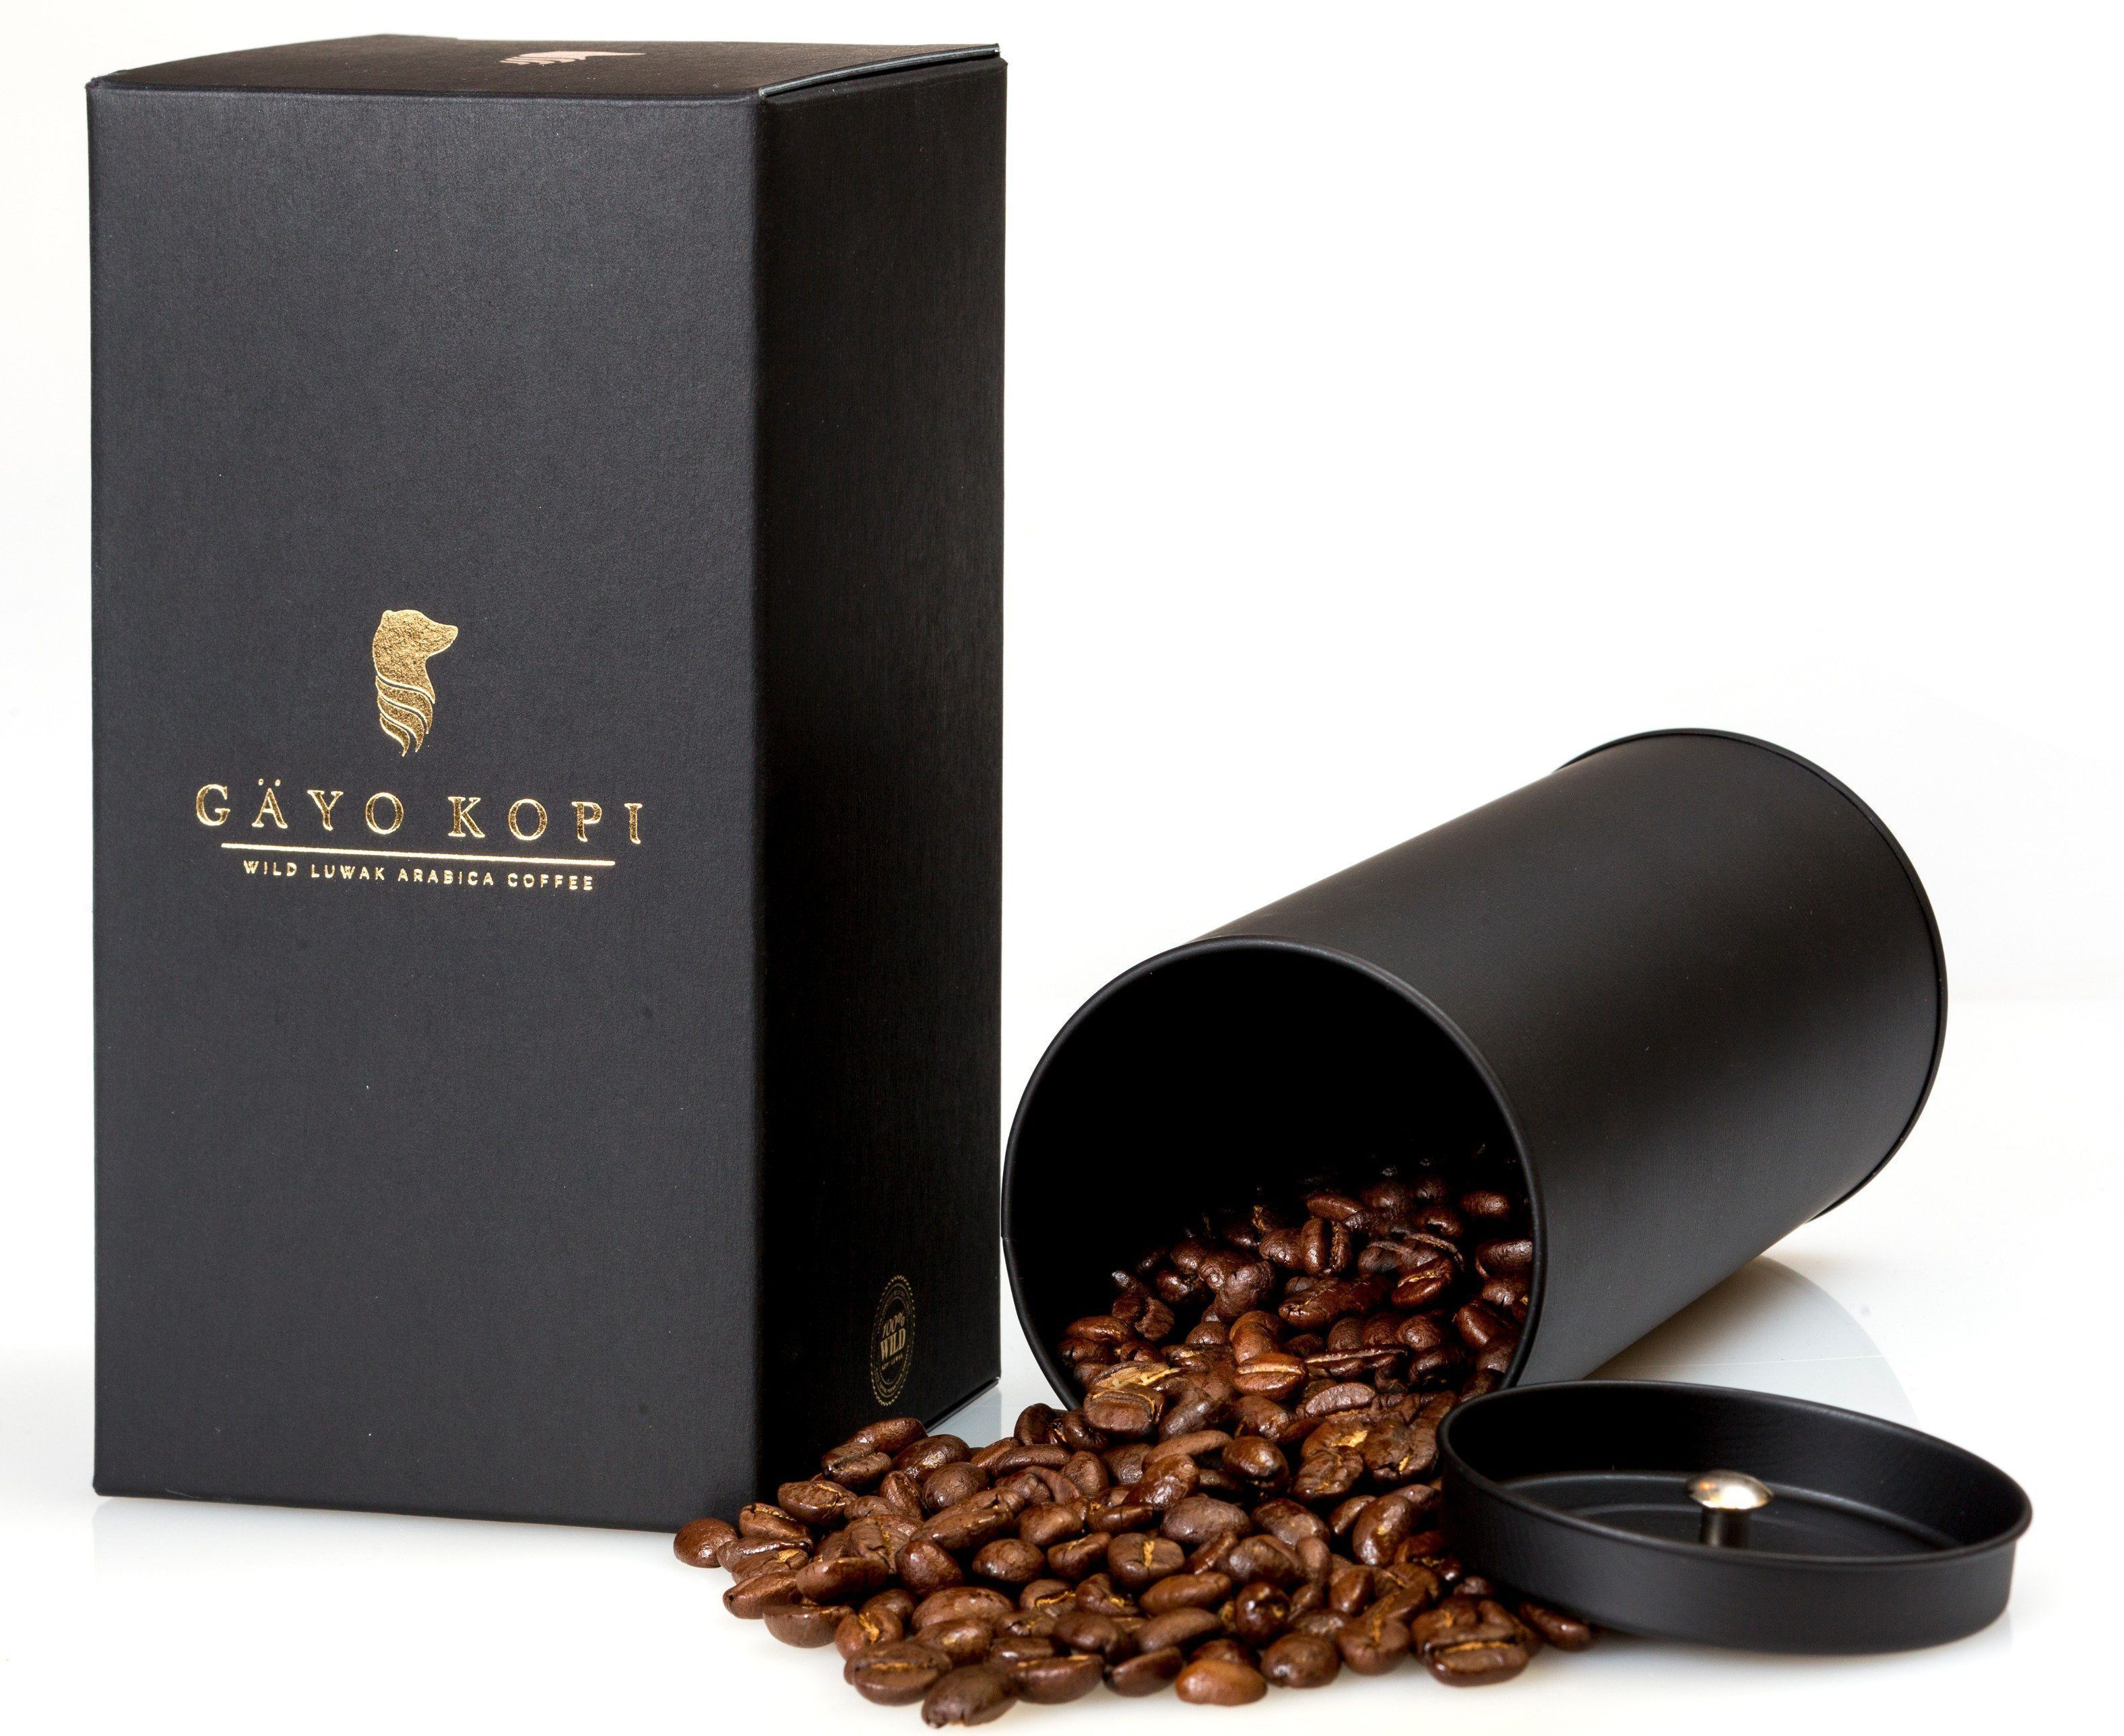 Kopi luwak, or civet coffee, is the most expensive and